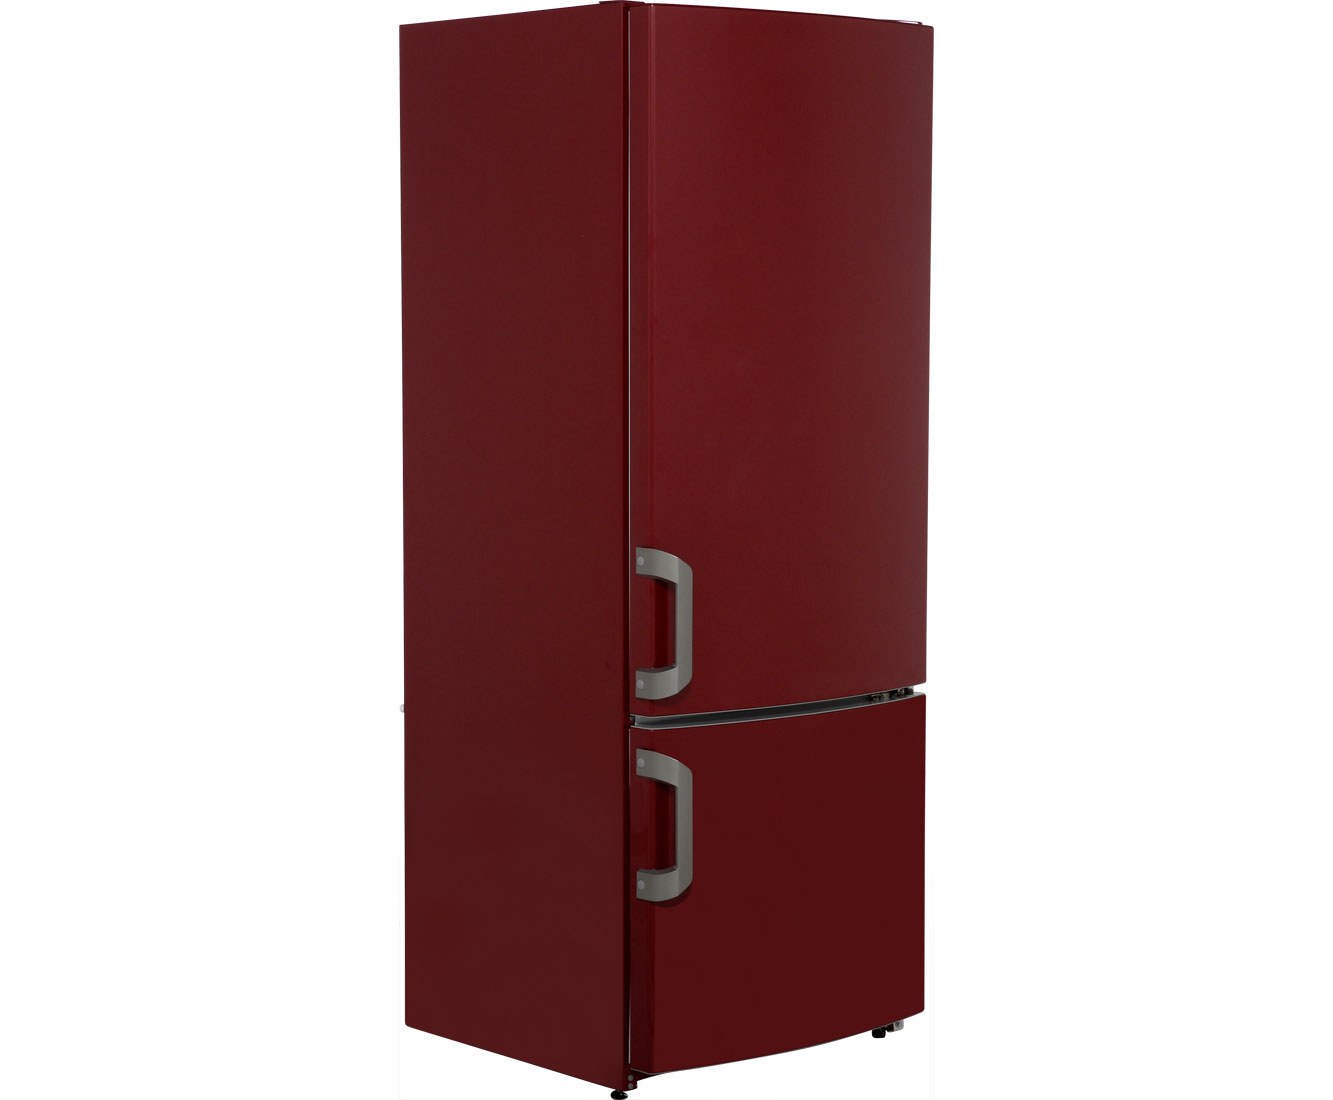 gorenje rk61620r k hl gefrierkombination freistehend bordeaux rot neu ebay. Black Bedroom Furniture Sets. Home Design Ideas